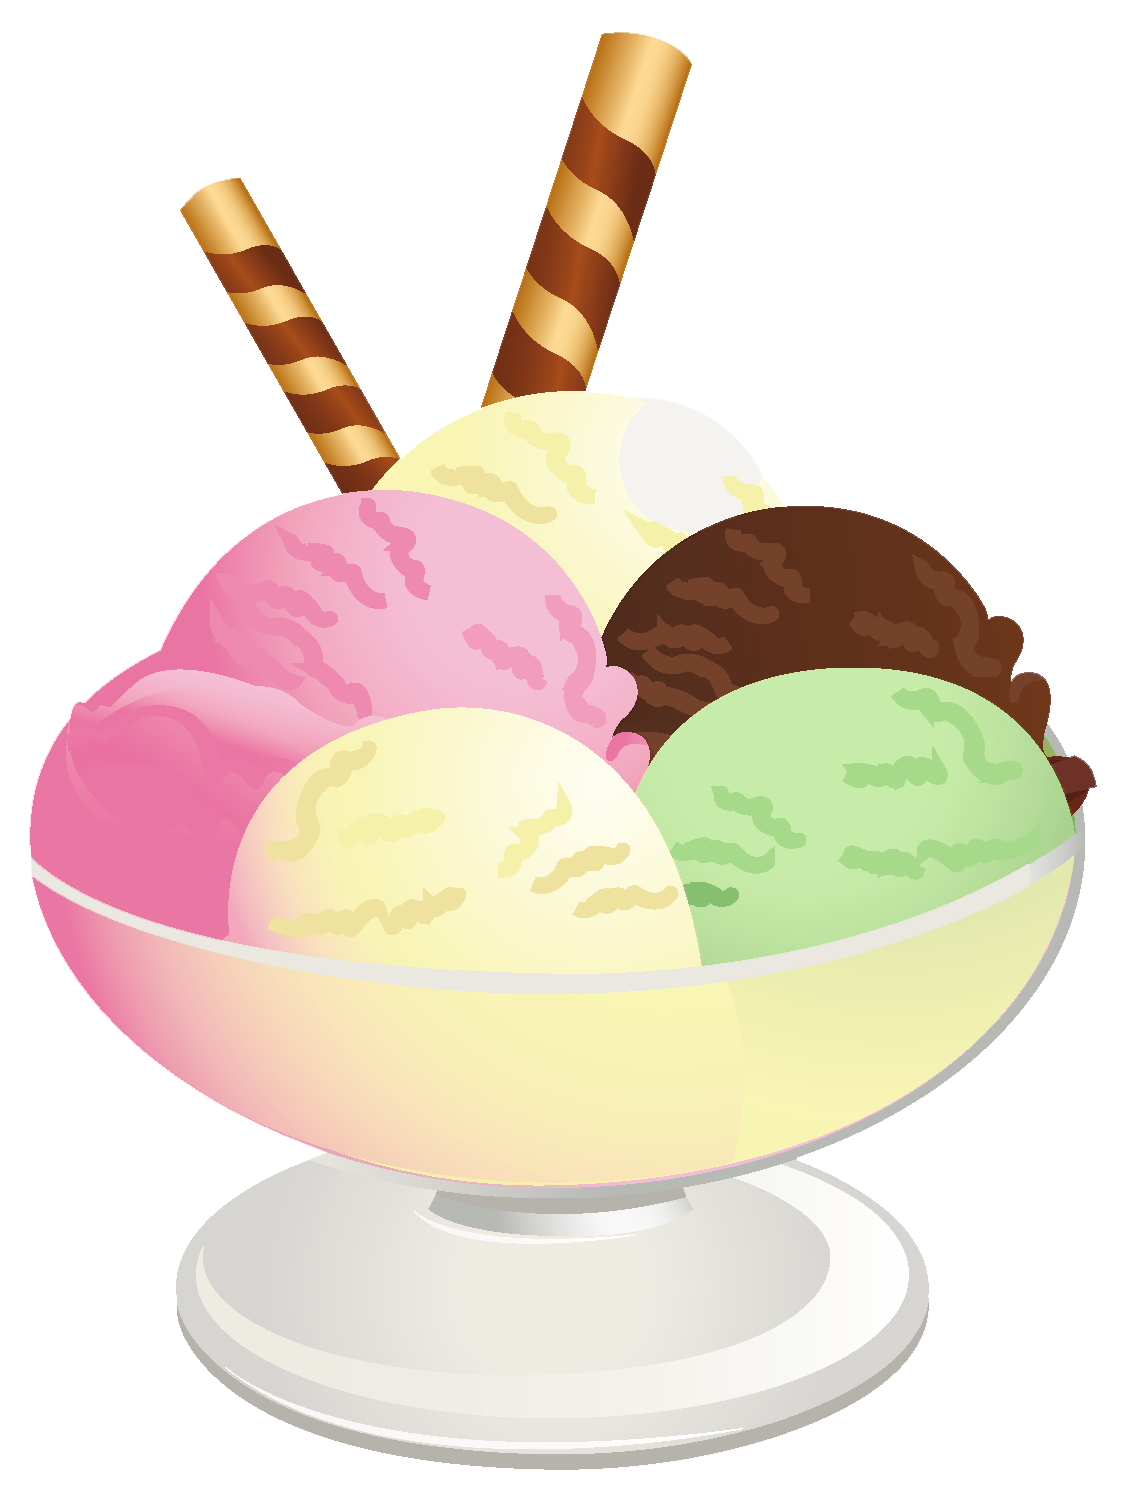 Hearts clipart ice cream. Sundae png picture scrap